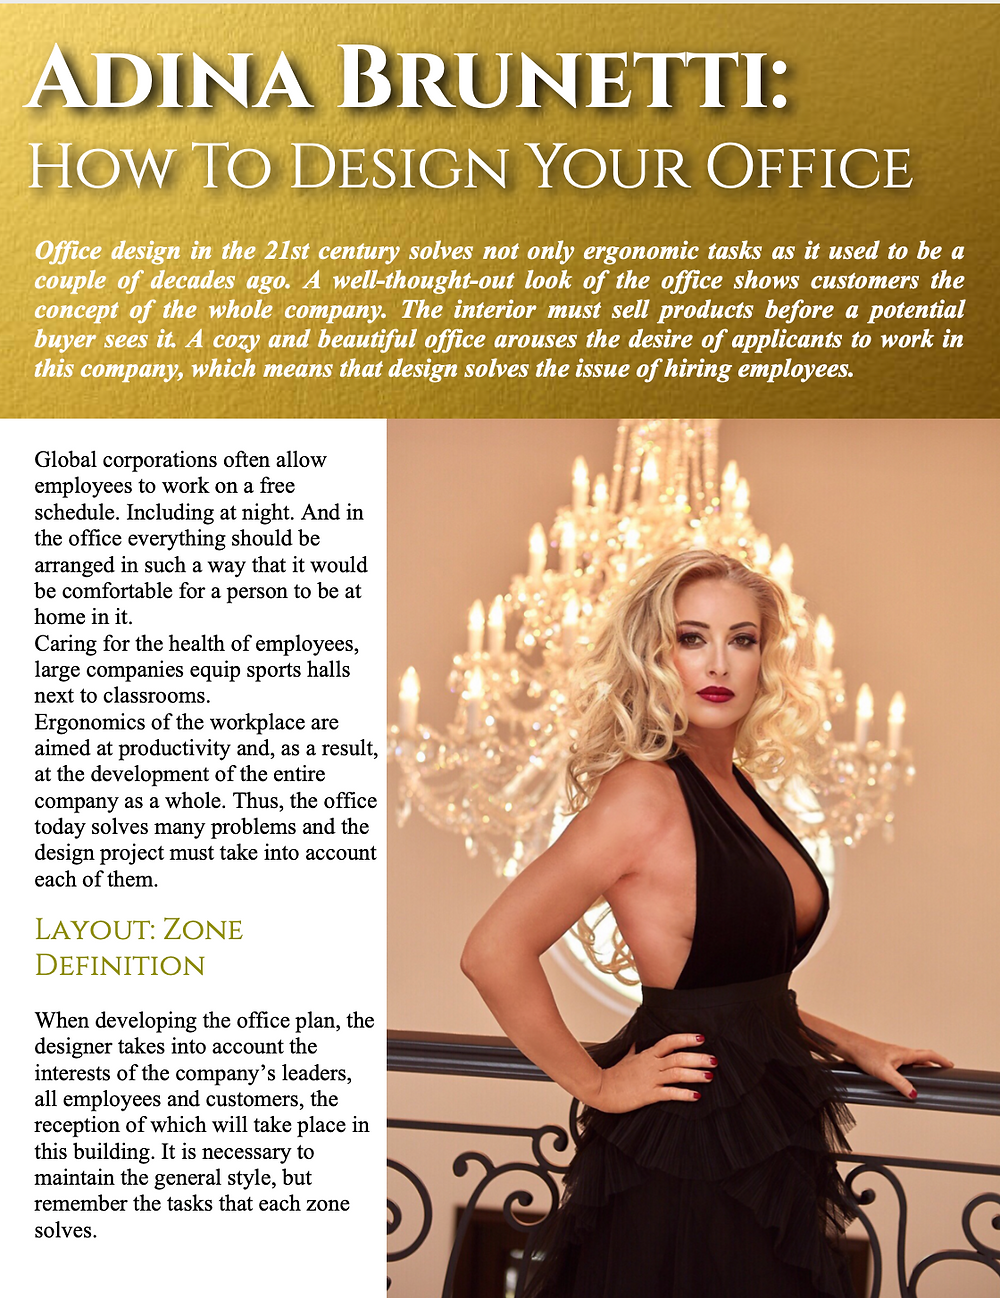 Adina Brunetti: How To Design Your Office Space